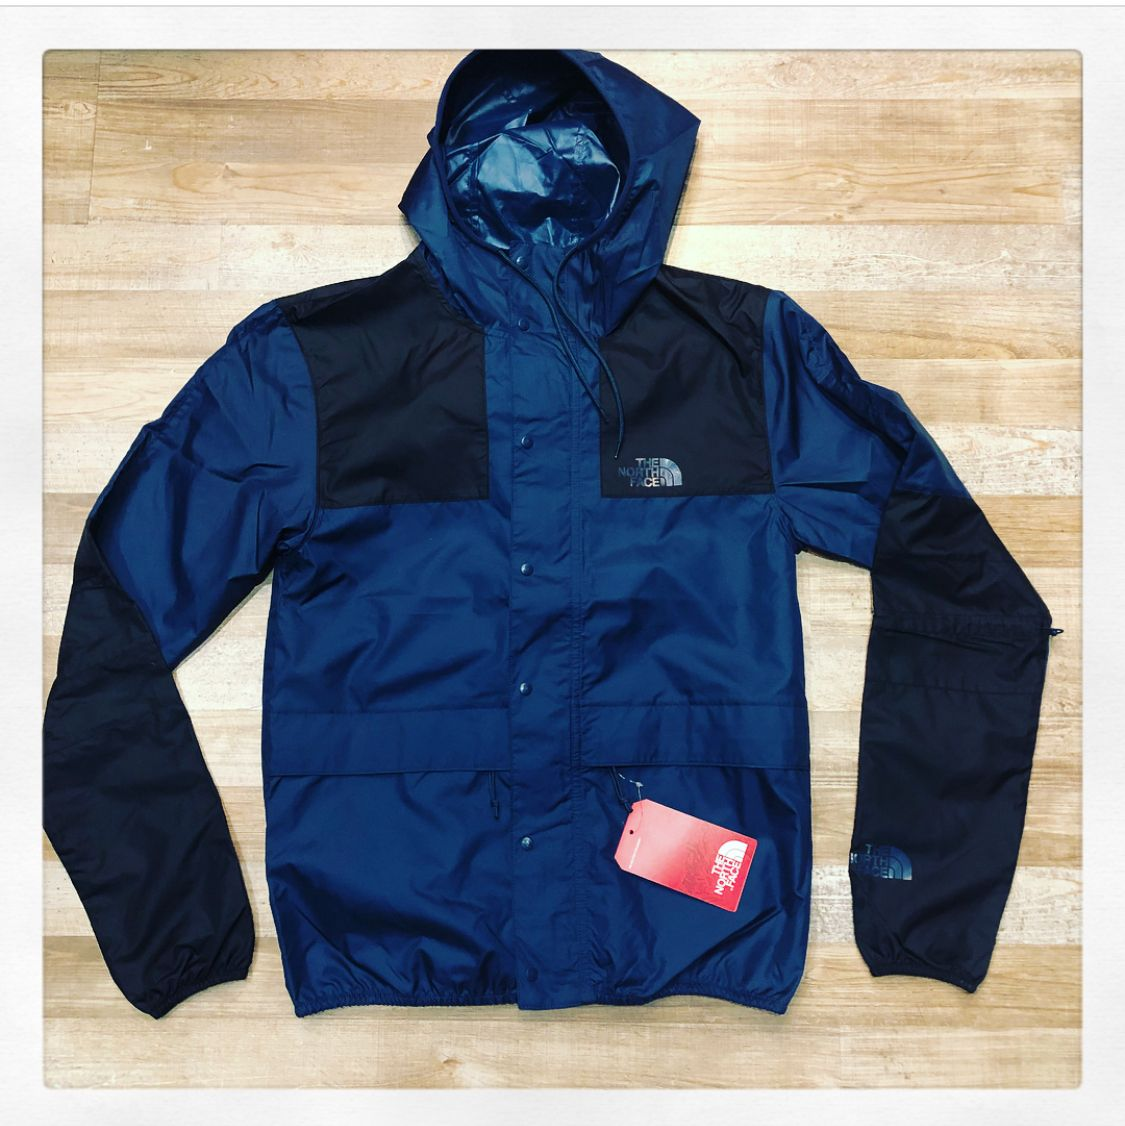 online store 5f09a 6bb6a The North Face WWW.PENNYLANE.IT Instagram:pennylanestore Fb ...